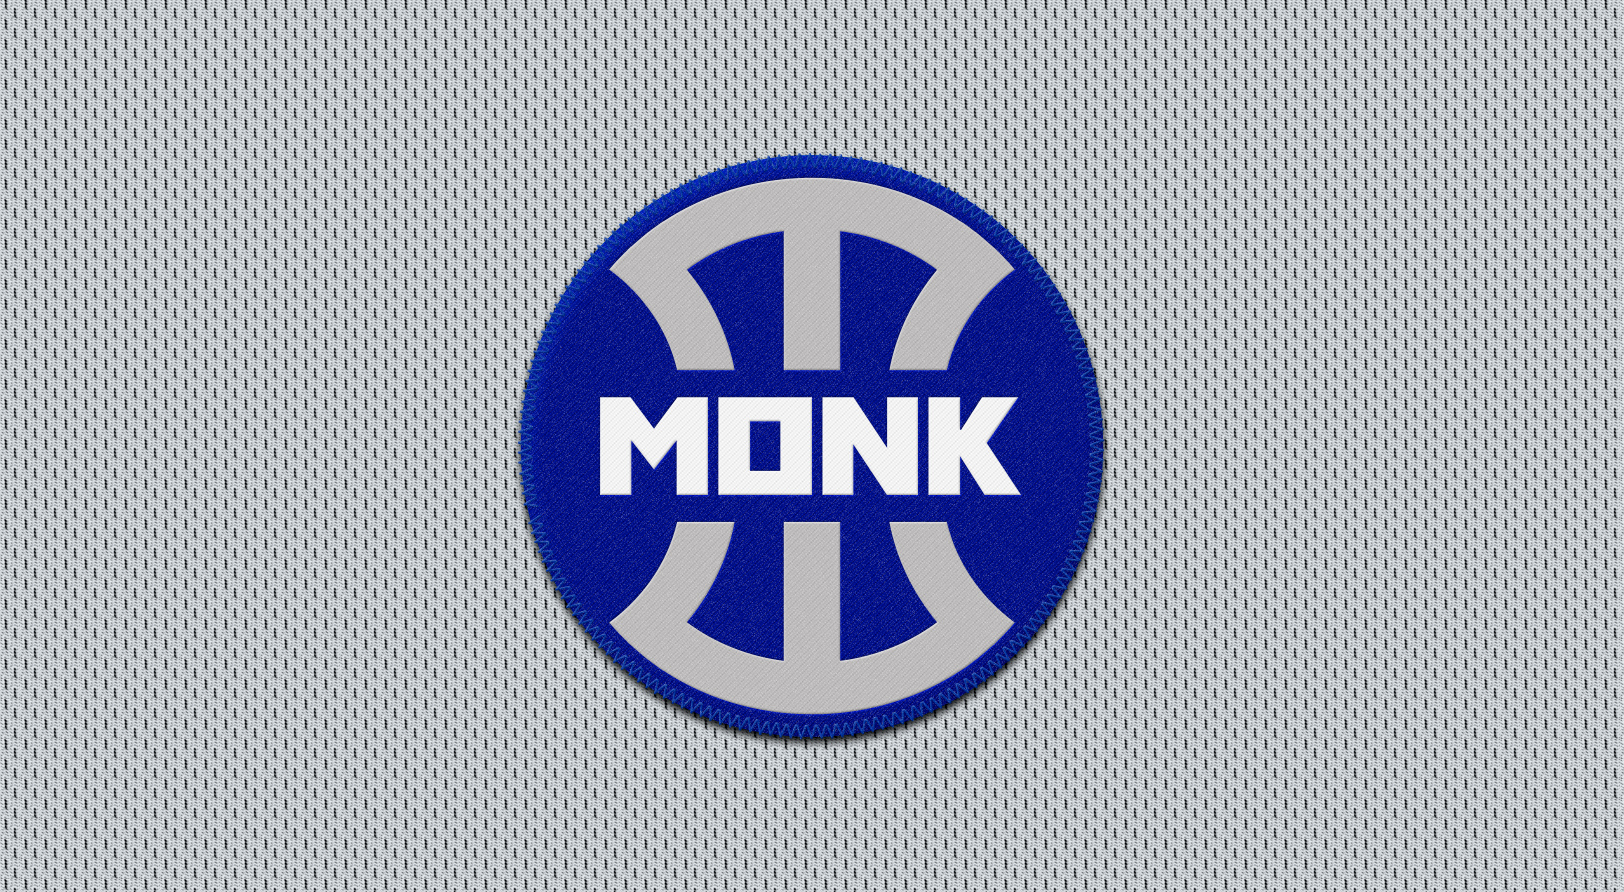 Sports Branding: Malik Monk Athlete Brand Identity